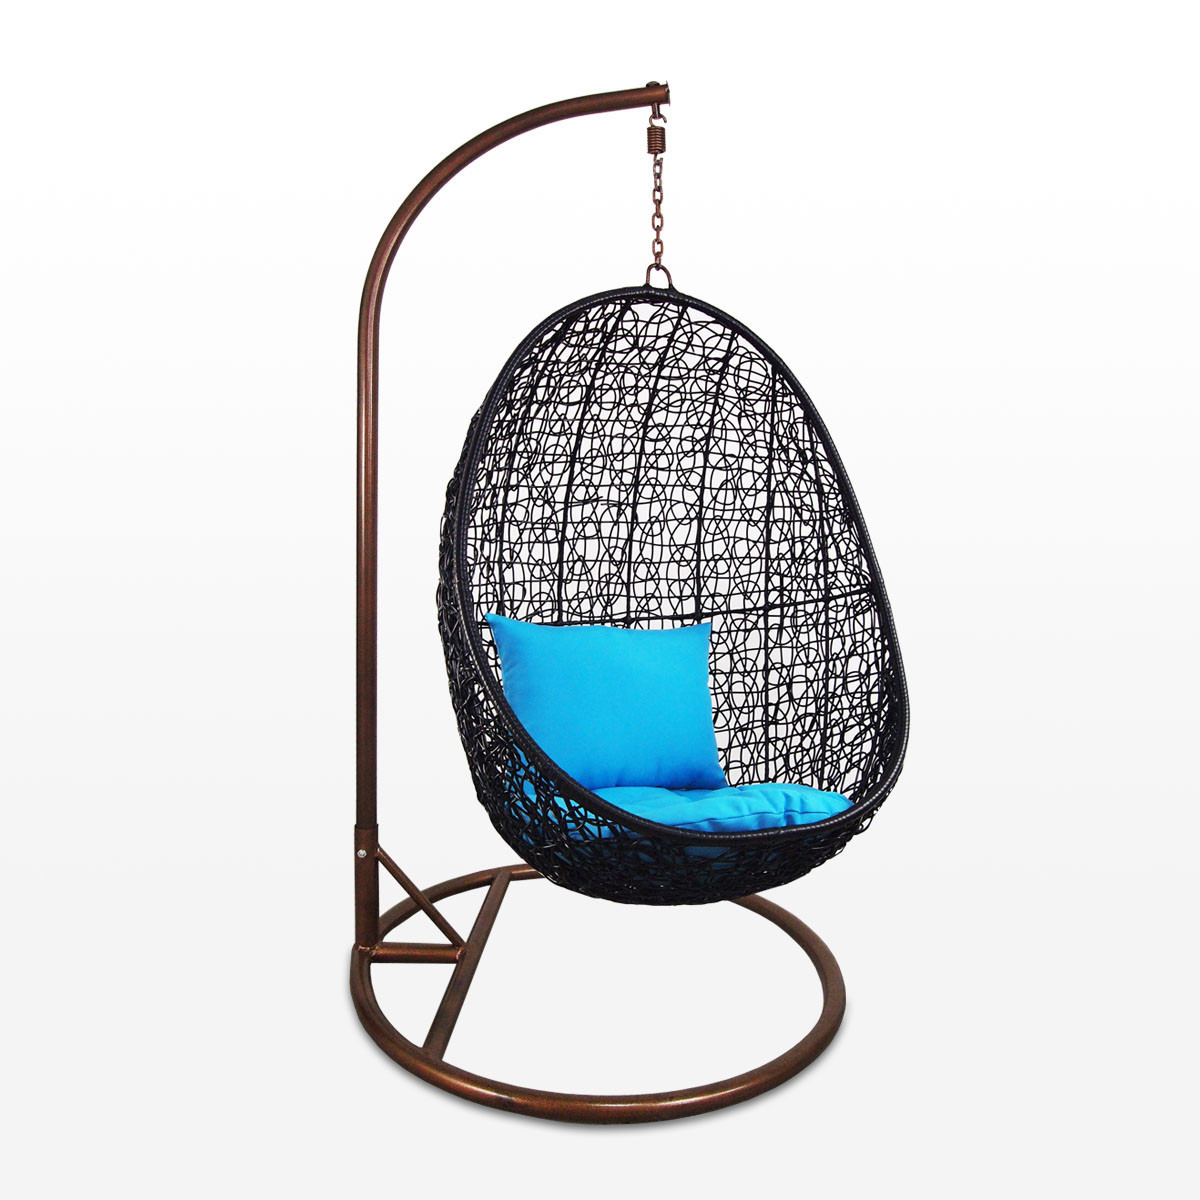 Cocoon Chair Black Cocoon Swing Chair Blue Cushion Furniture And Home